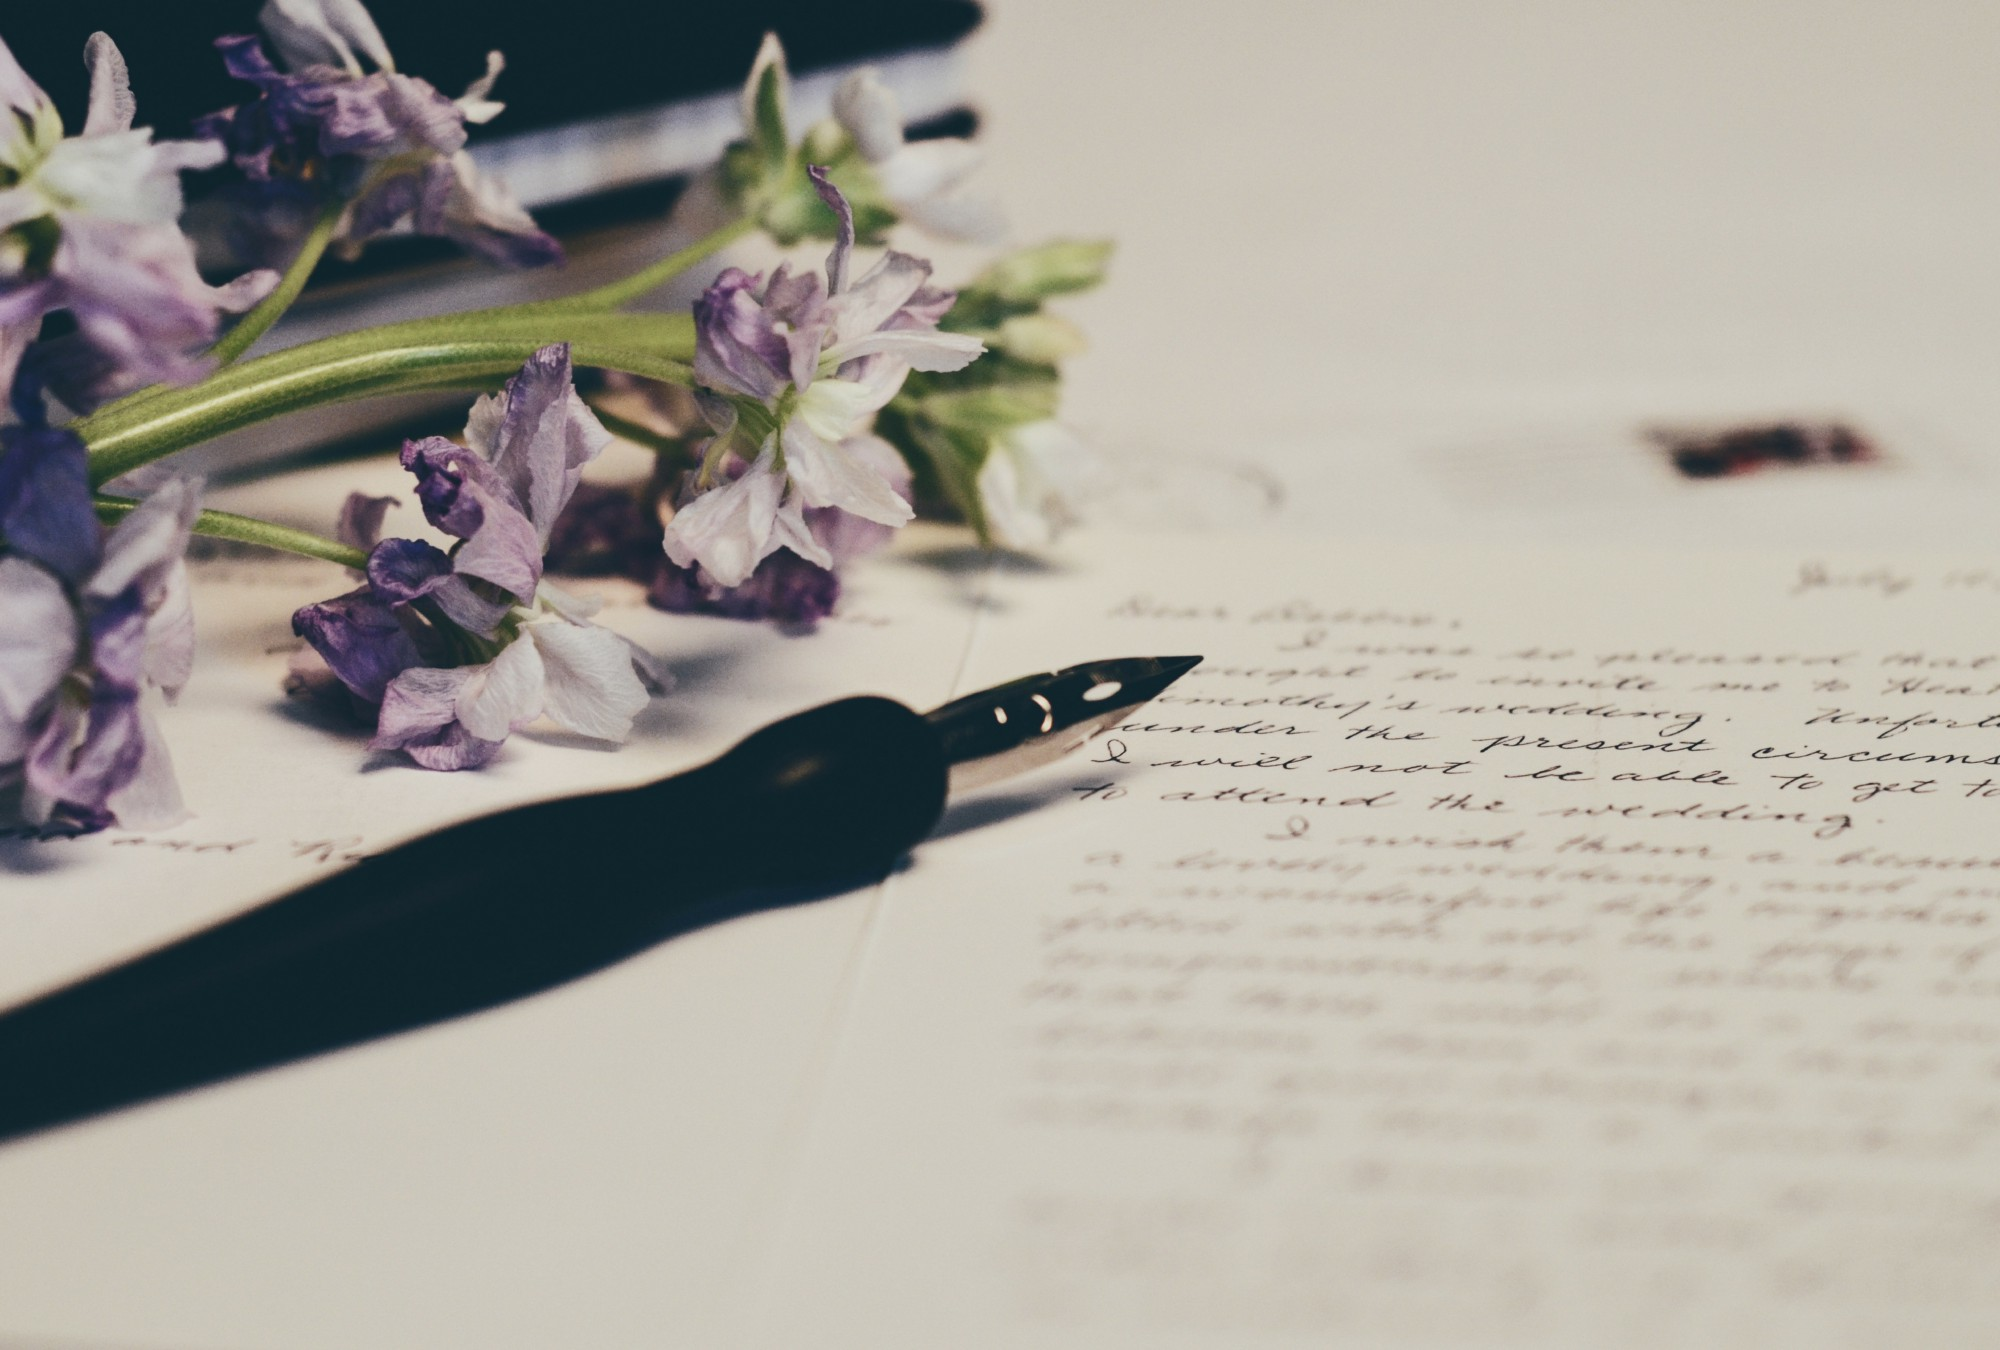 A piece of paper with writing on it, a calligraphy pen and flowers next to it